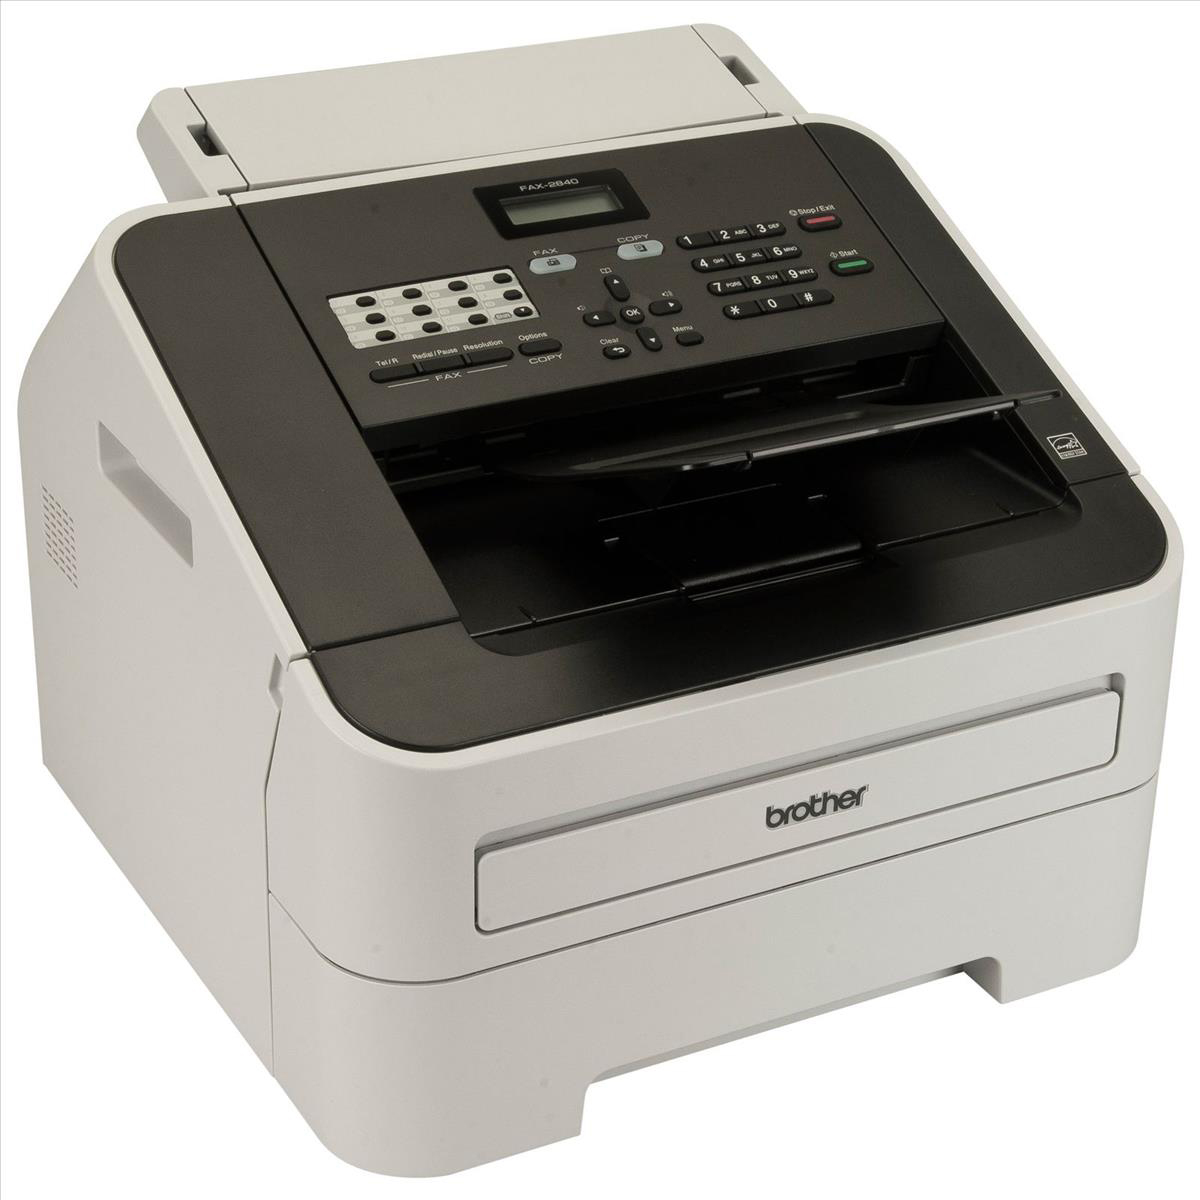 Brother FAX2840 Mono Laser Fax Machine Ref FAX2840ZU1